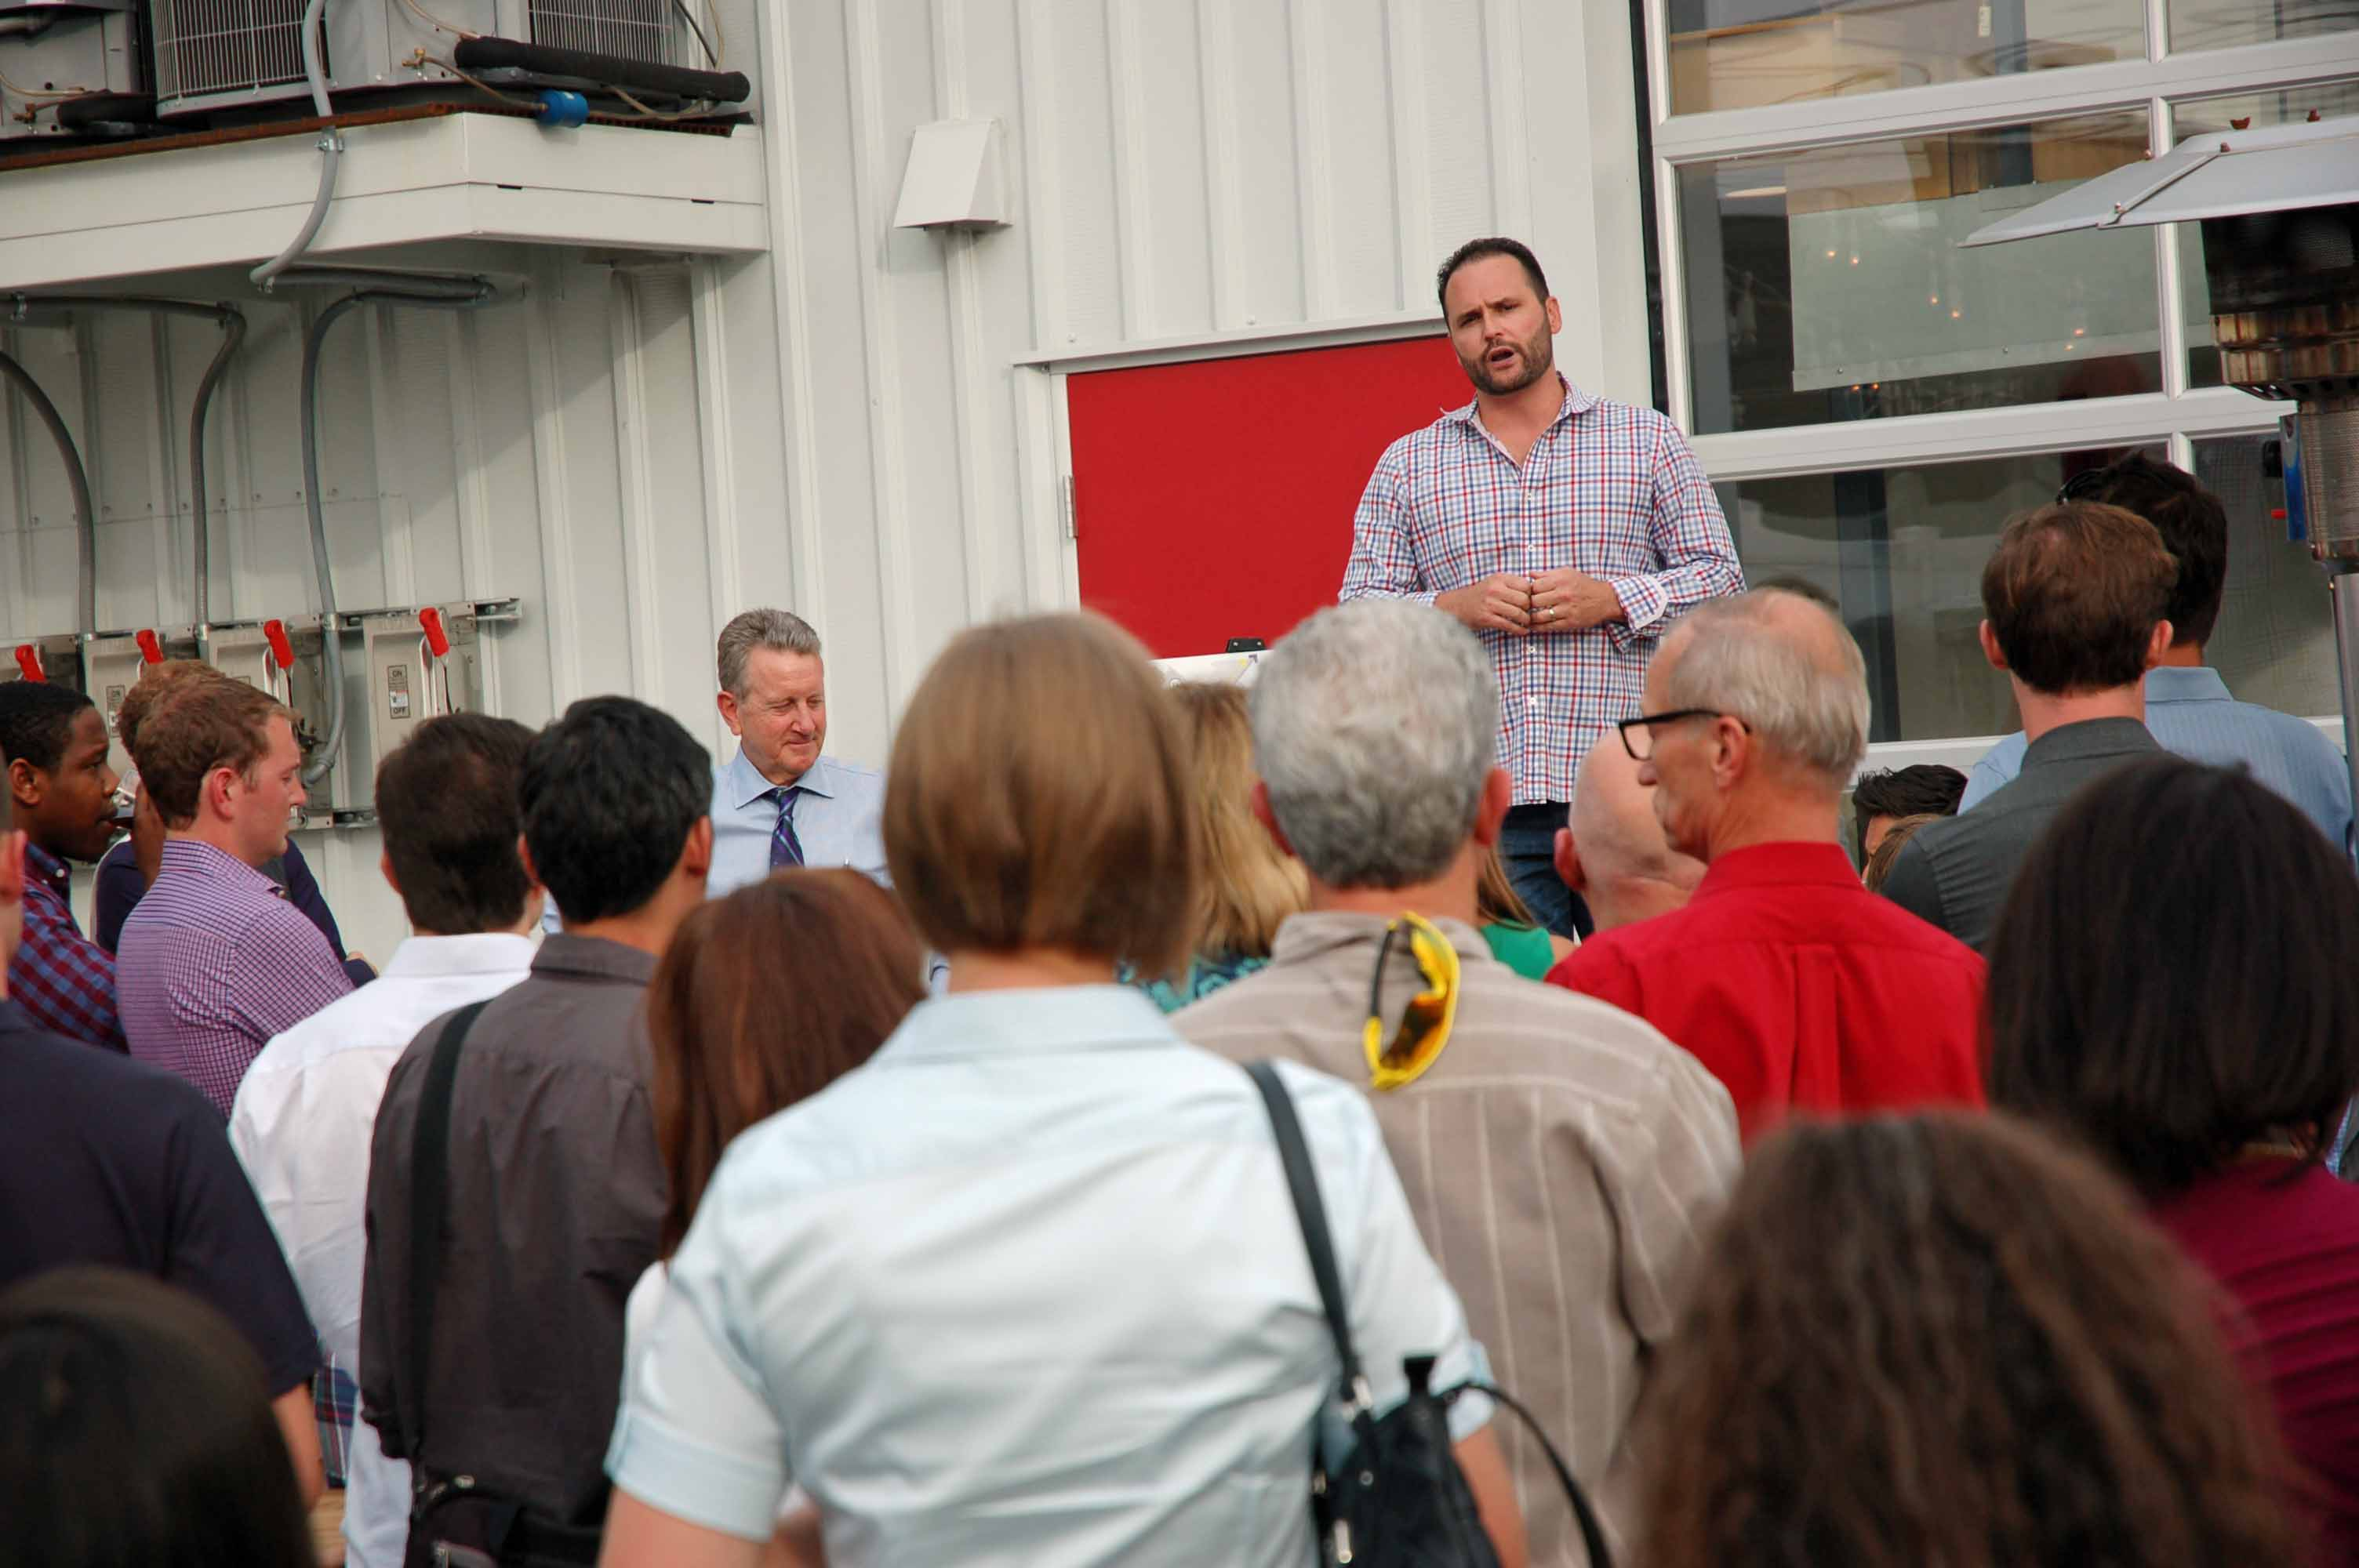 Mike Biselli addressed the guests at the Catalyst Land Announcement Party.